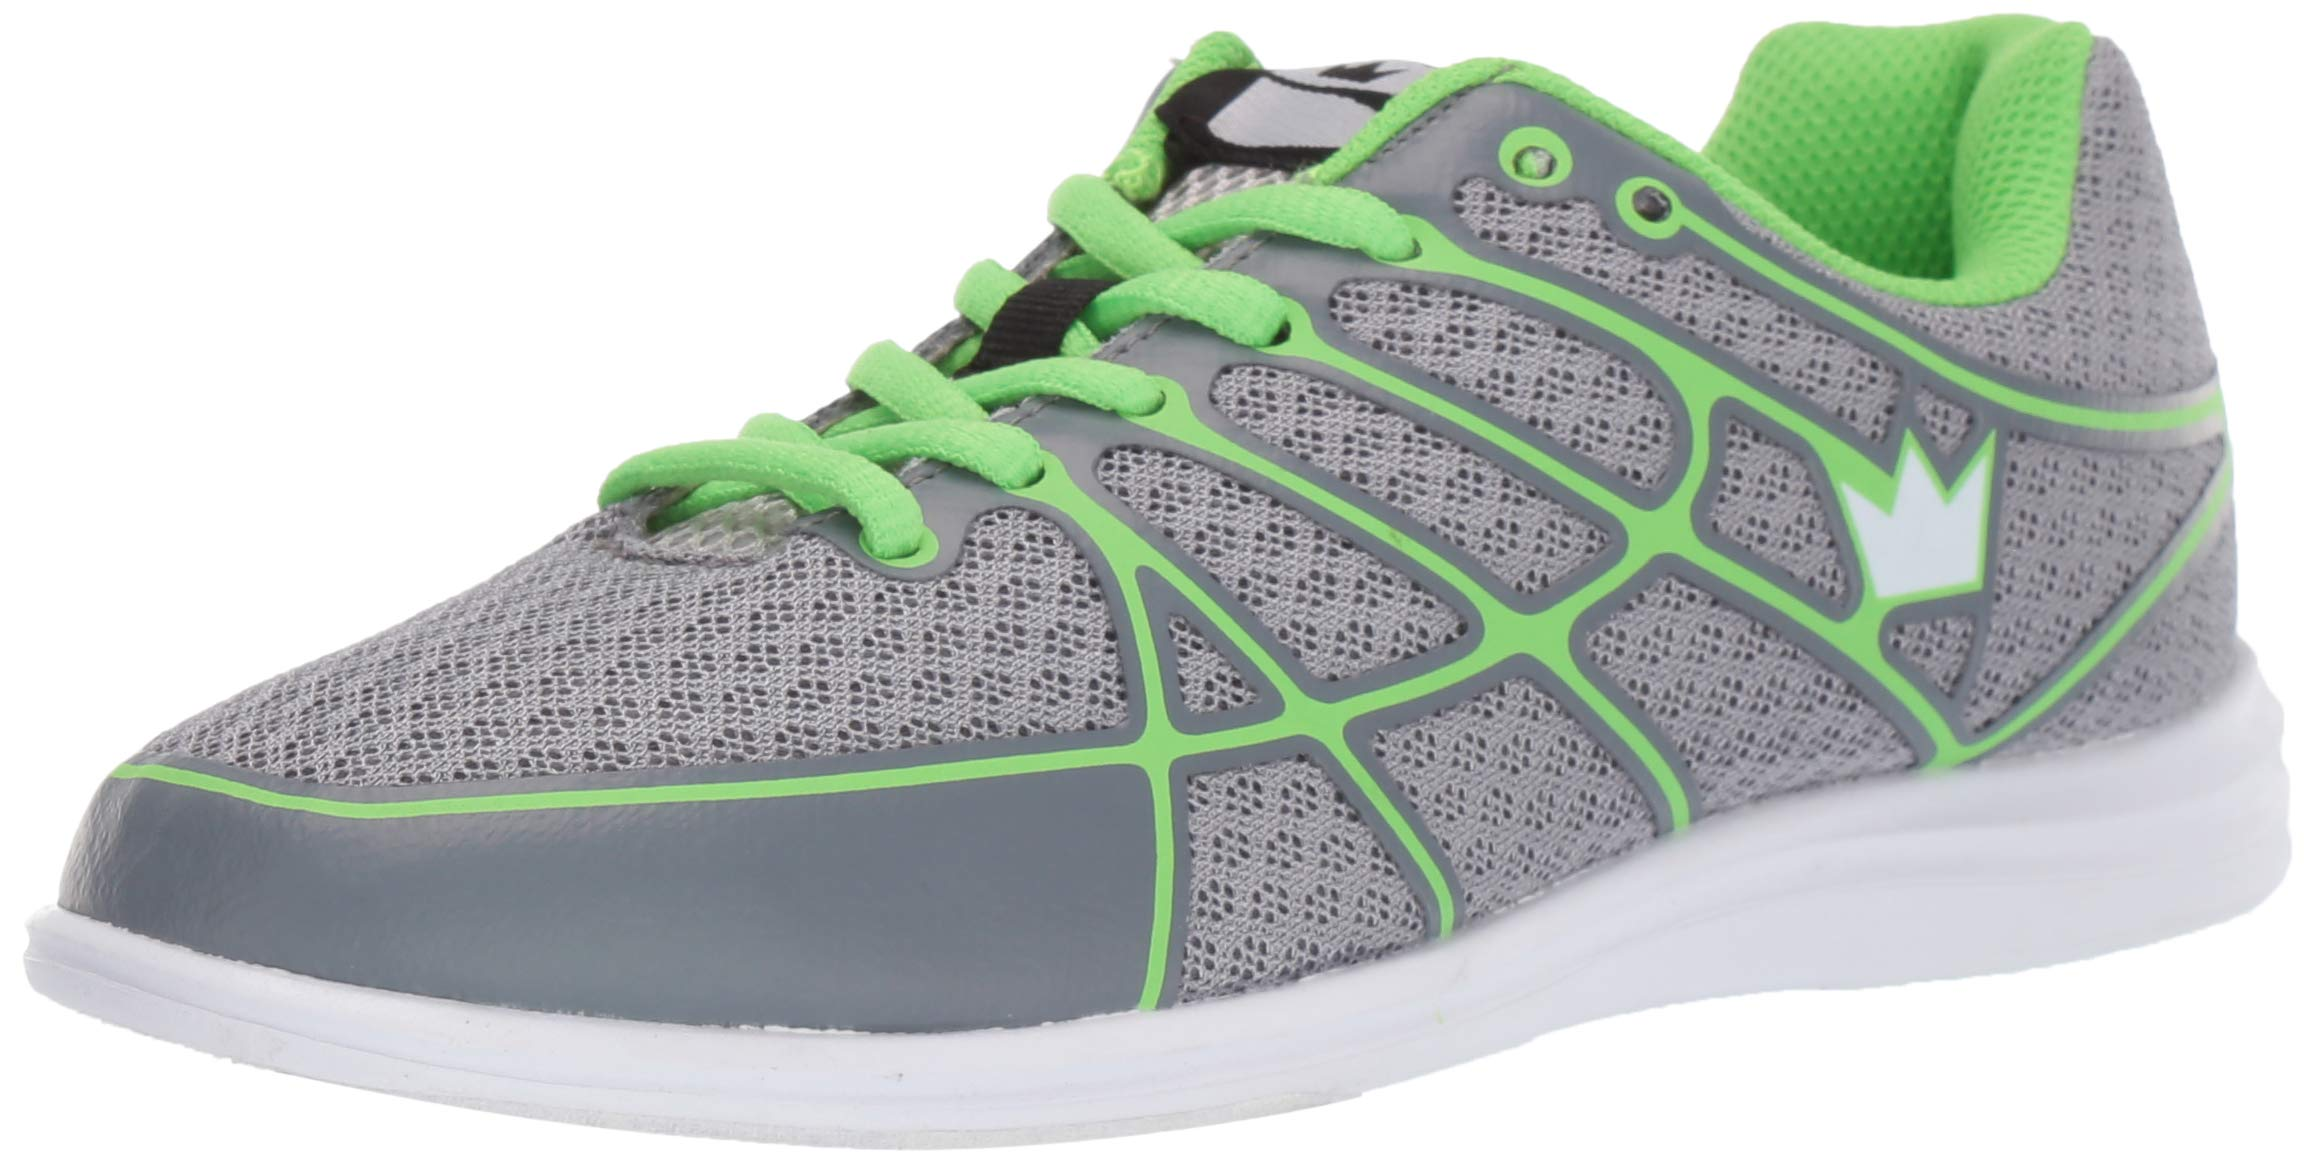 Brunswick Aura Women's Bowling Shoes, Grey/Lime, 10 by Brunswick